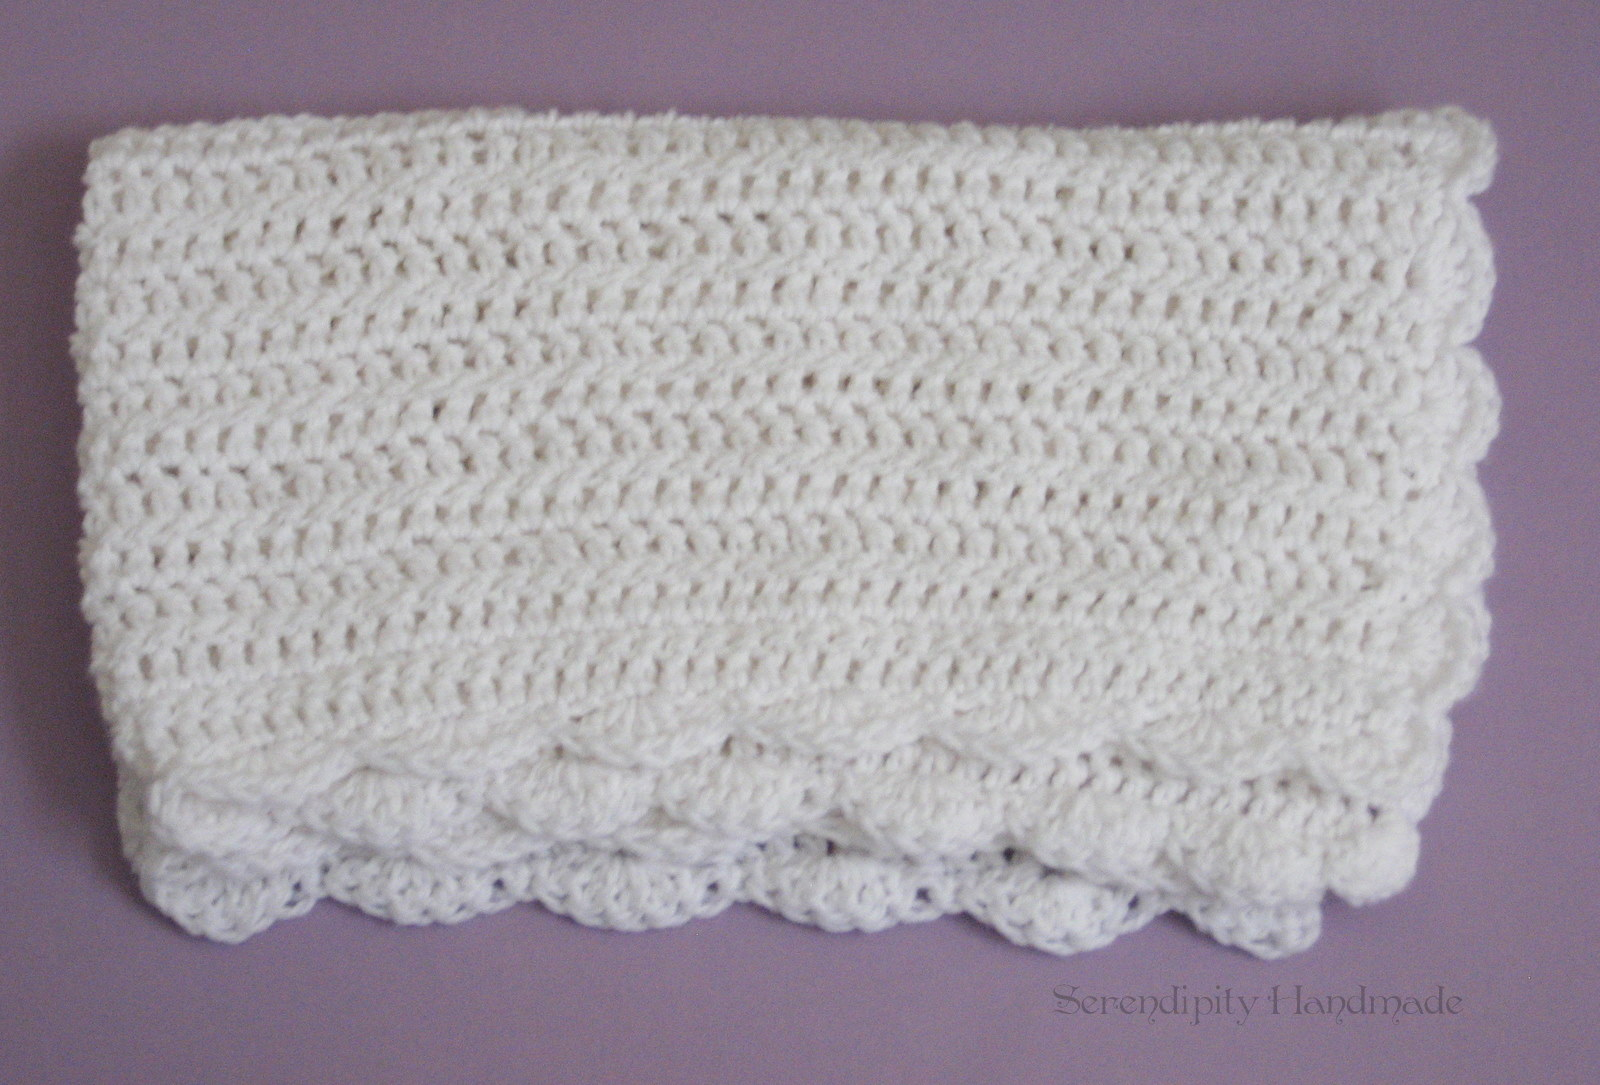 Crochet Lap Blanket : Serendipity Handmade: Craft Update: Crocheted Lap Blanket